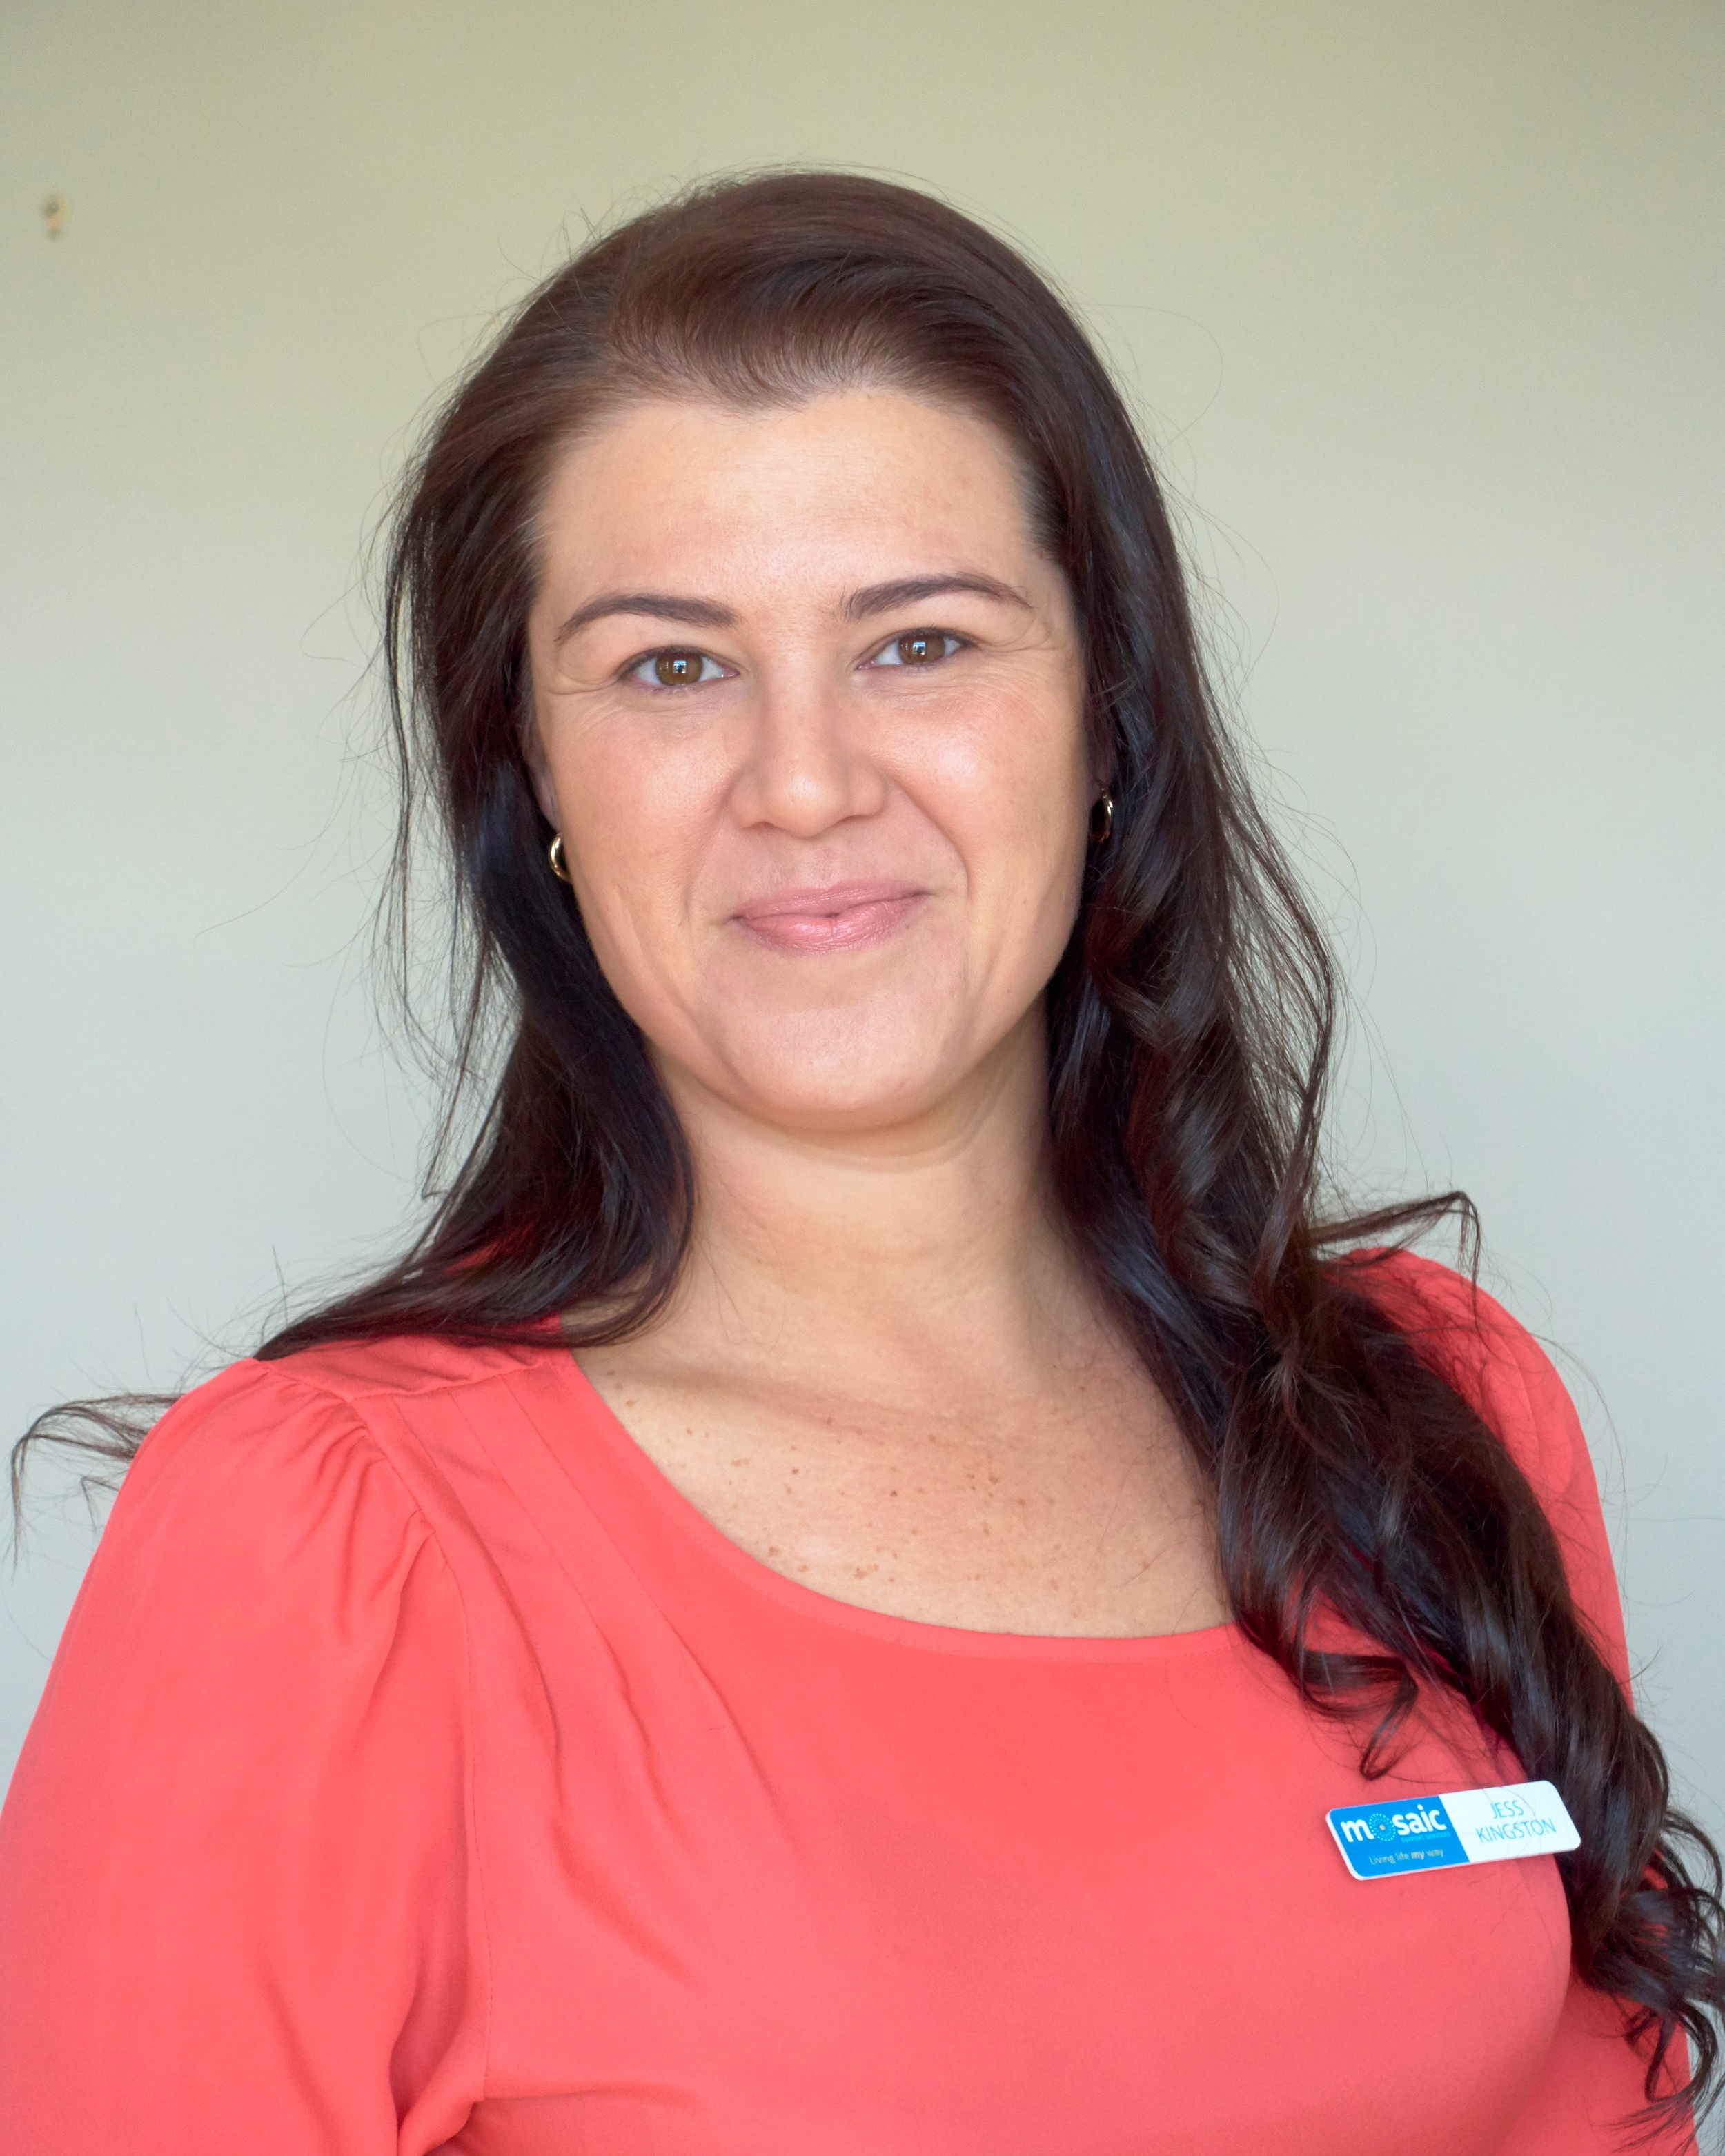 Jessica Kingston - General Manager – People and CultureJessica oversees our highly engaged human resource team who do everything from remuneration and reward, industrial relations, learning and organisational development, workplace health and safety and policy and risk.Jessica joined Mosaic in August 2018 with a huge depth of human resources experience gained from working at MyState Bank where she moved quickly up the ranks from Manager Industrial and Employee Relations to Senior Manager Human Resources, and finally General Manager HR and Property. Her passion is creating engaged, thriving workforces that value health, well being and professional development.Jessica is a specialist in Employment Law and has a degree in Human Resources from UTAS, her Cert IV in Workplace Health and Safety from the Skills Institute Tasmania, an Advanced Diploma of Human Resources of Human Resources from Tafe Tasmania, her Ergonomic Assessor Certificate from IPM Safety and she is a Certified alcohol and drug tester from Drug Test Tasmania.